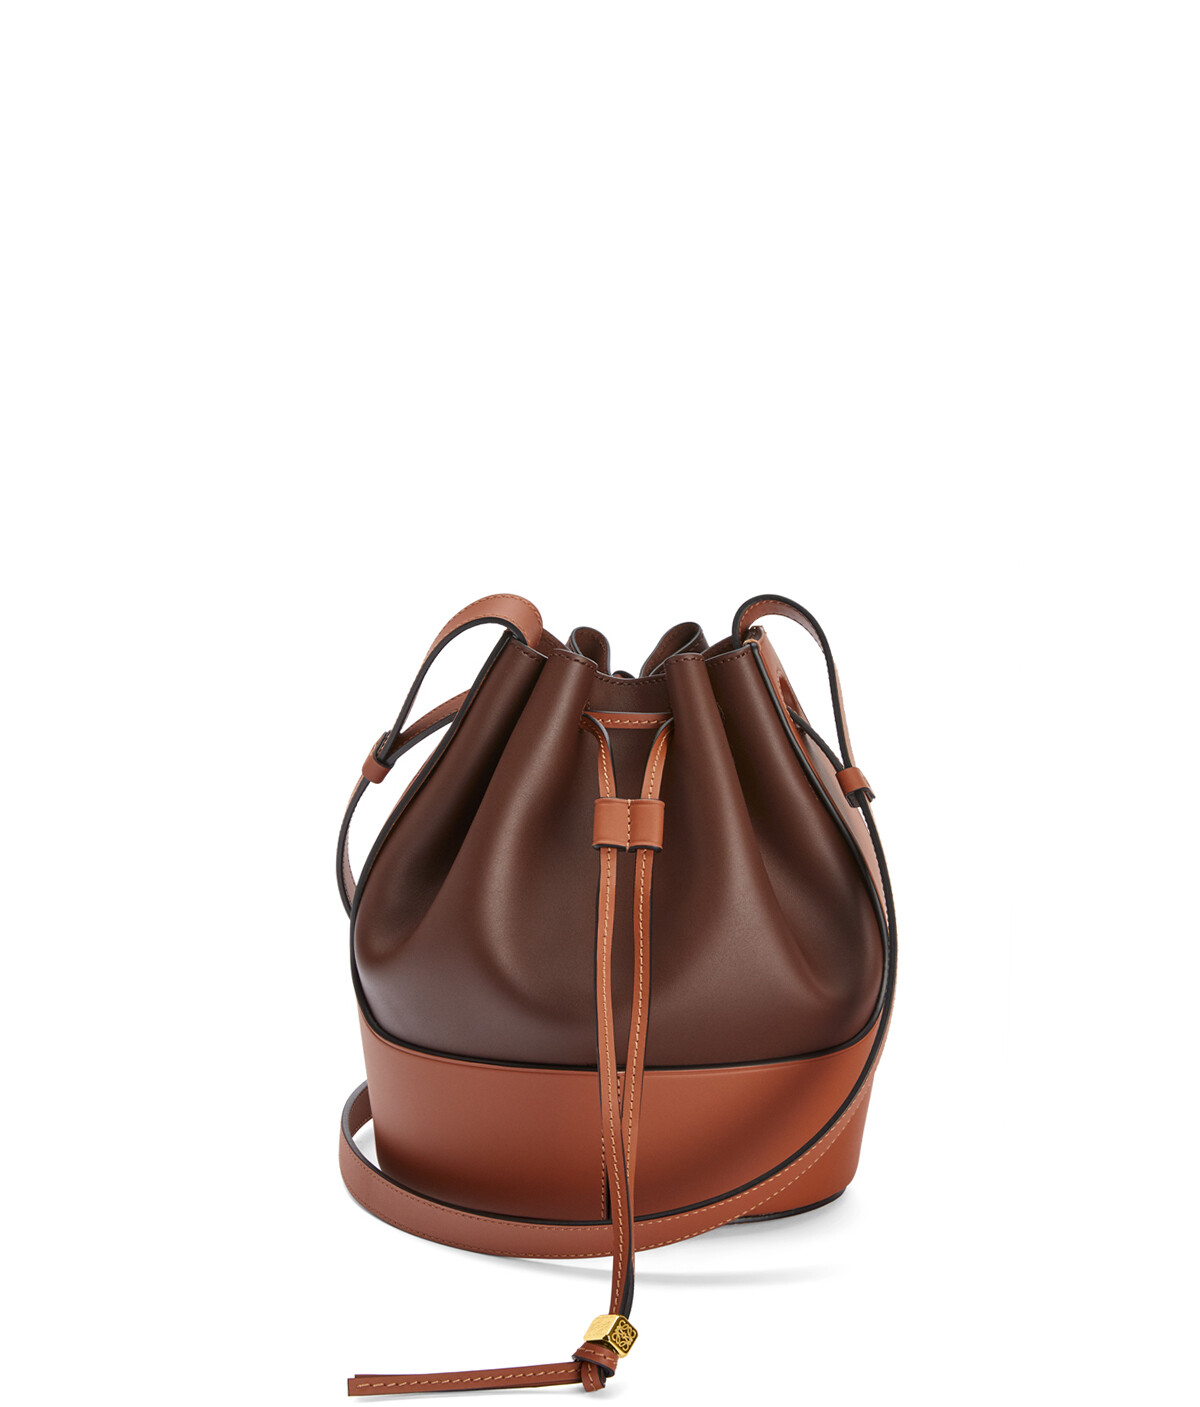 LOEWE Balloon Small Bag Hazelnut/Tan front